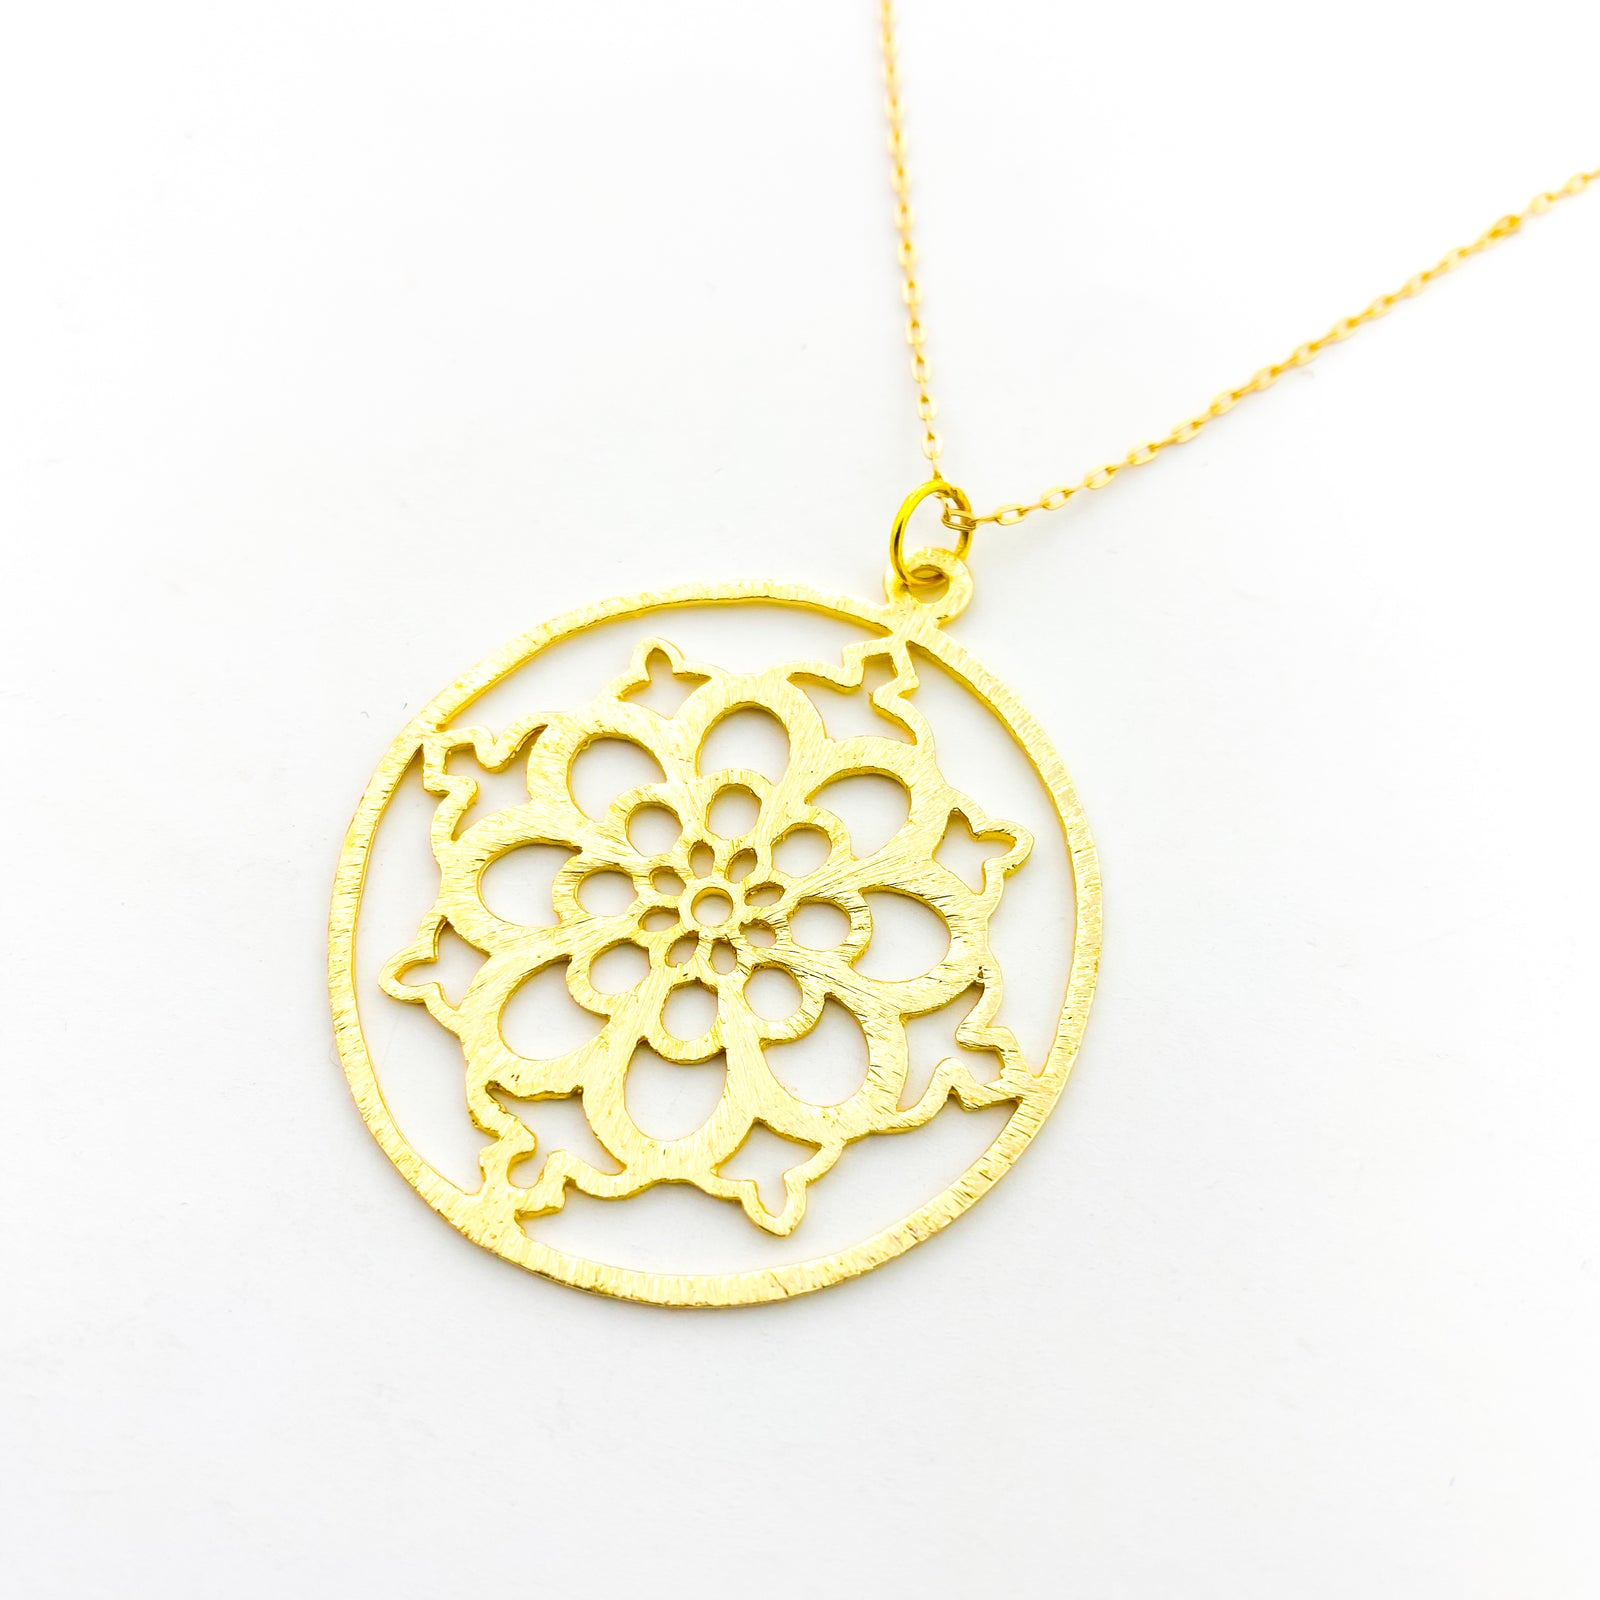 LONG BRUSHED HANGING FLORAL NECKLACE | GOLD